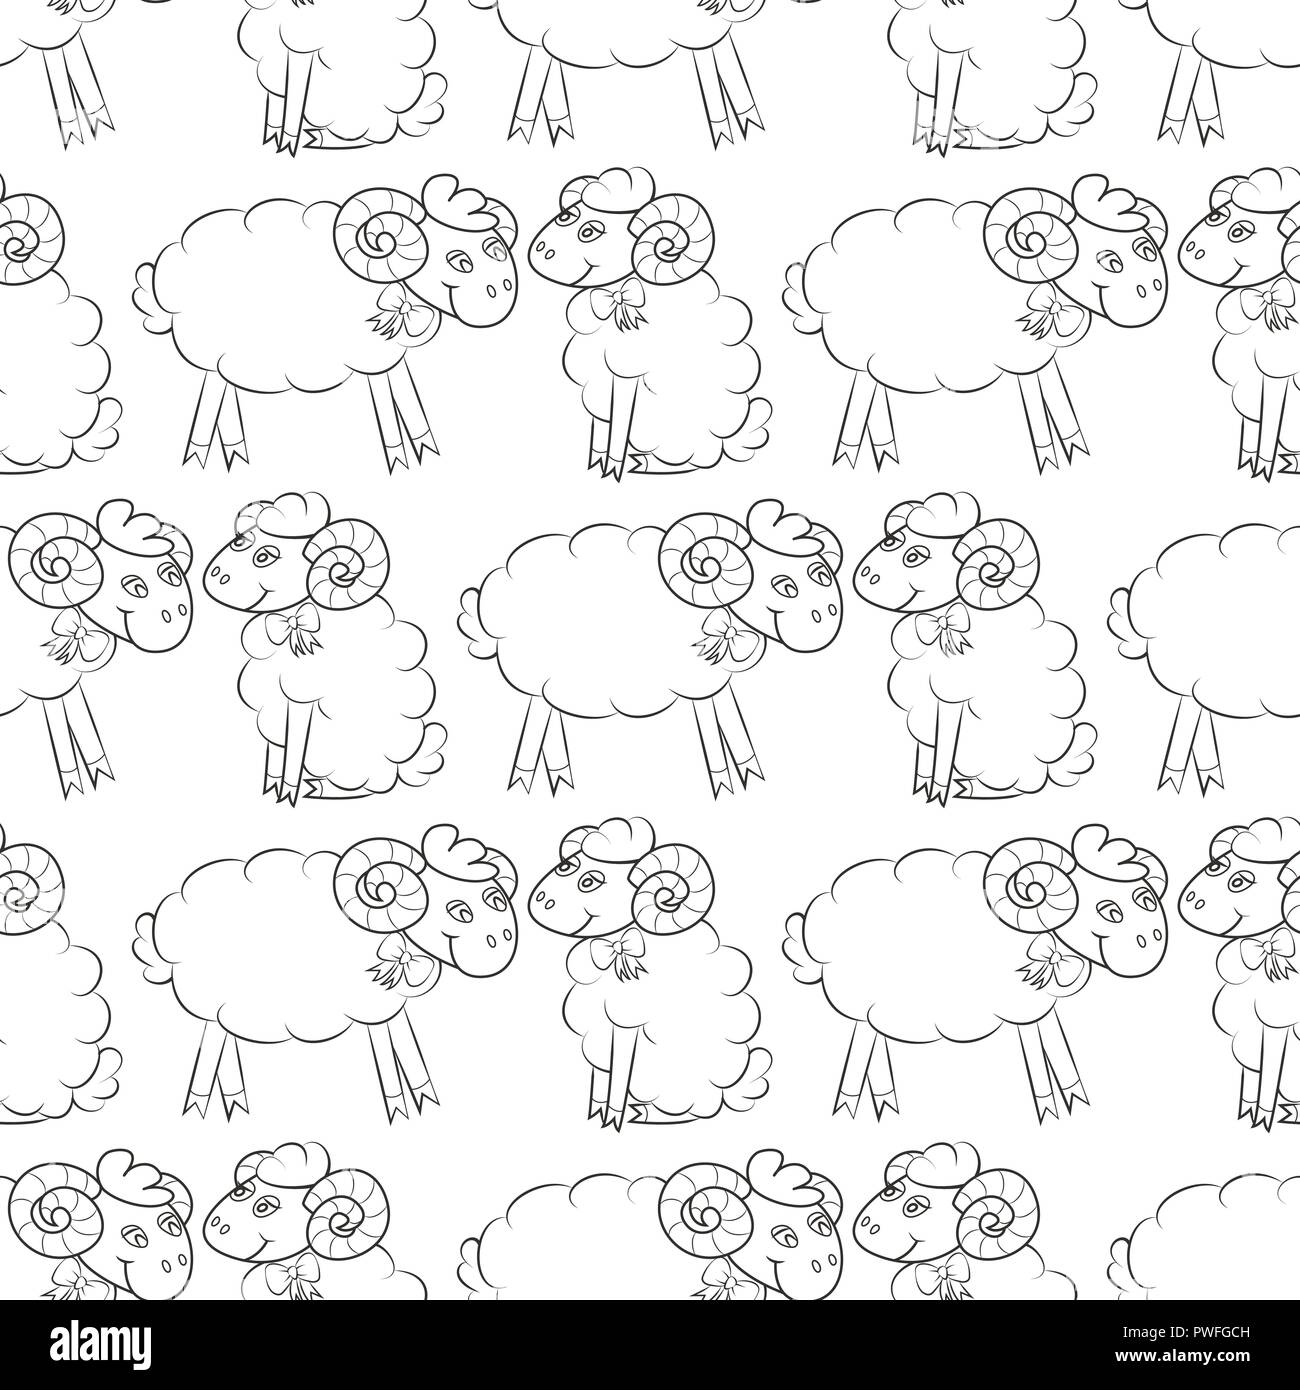 Sheep Flying In The Sky With Clouds Cute Wallpaper For Kids Vector Illustration Seamless Pattern Background